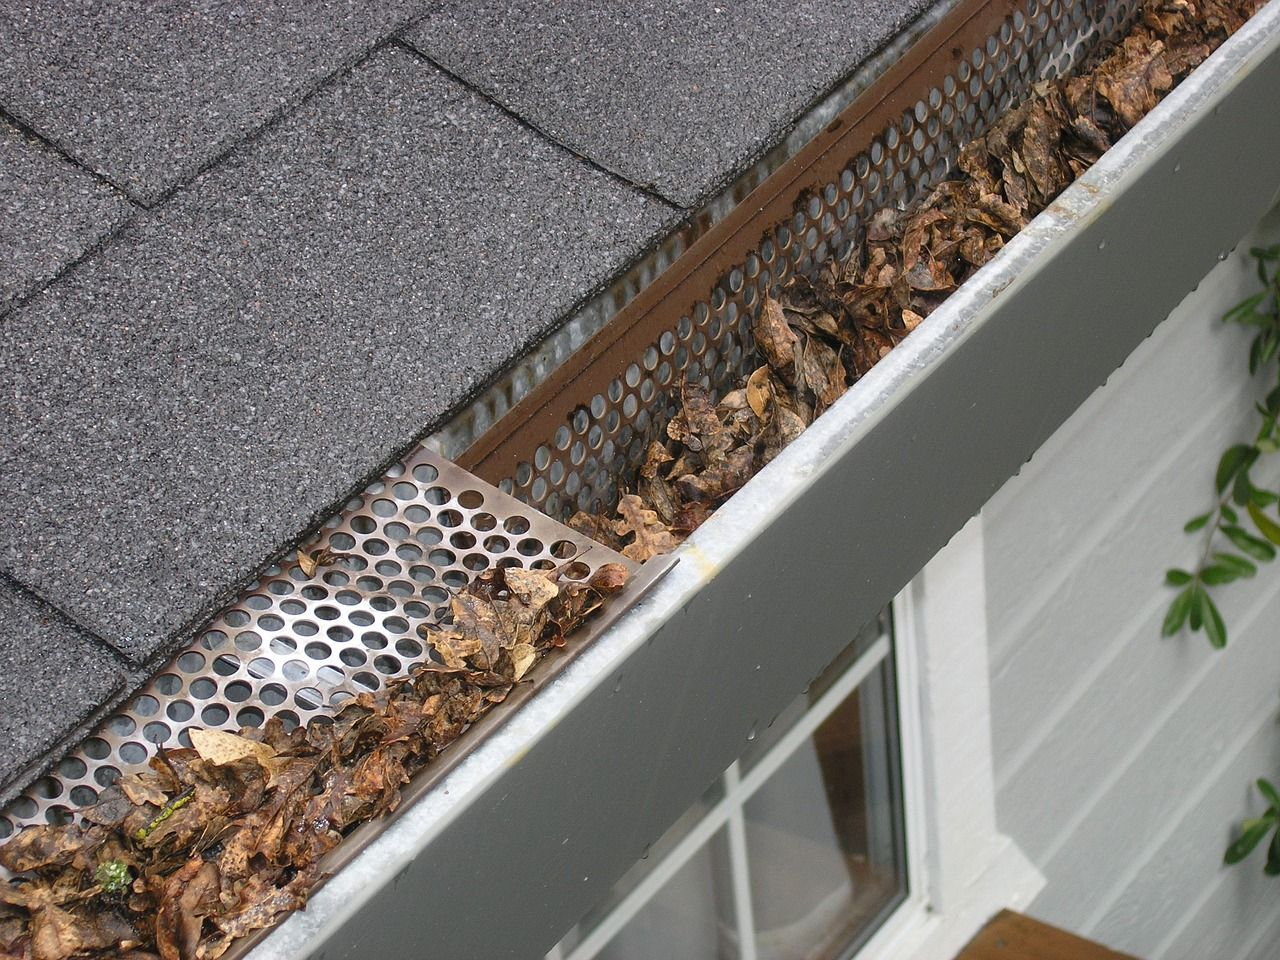 Cleaning Gutters: Why, When and How